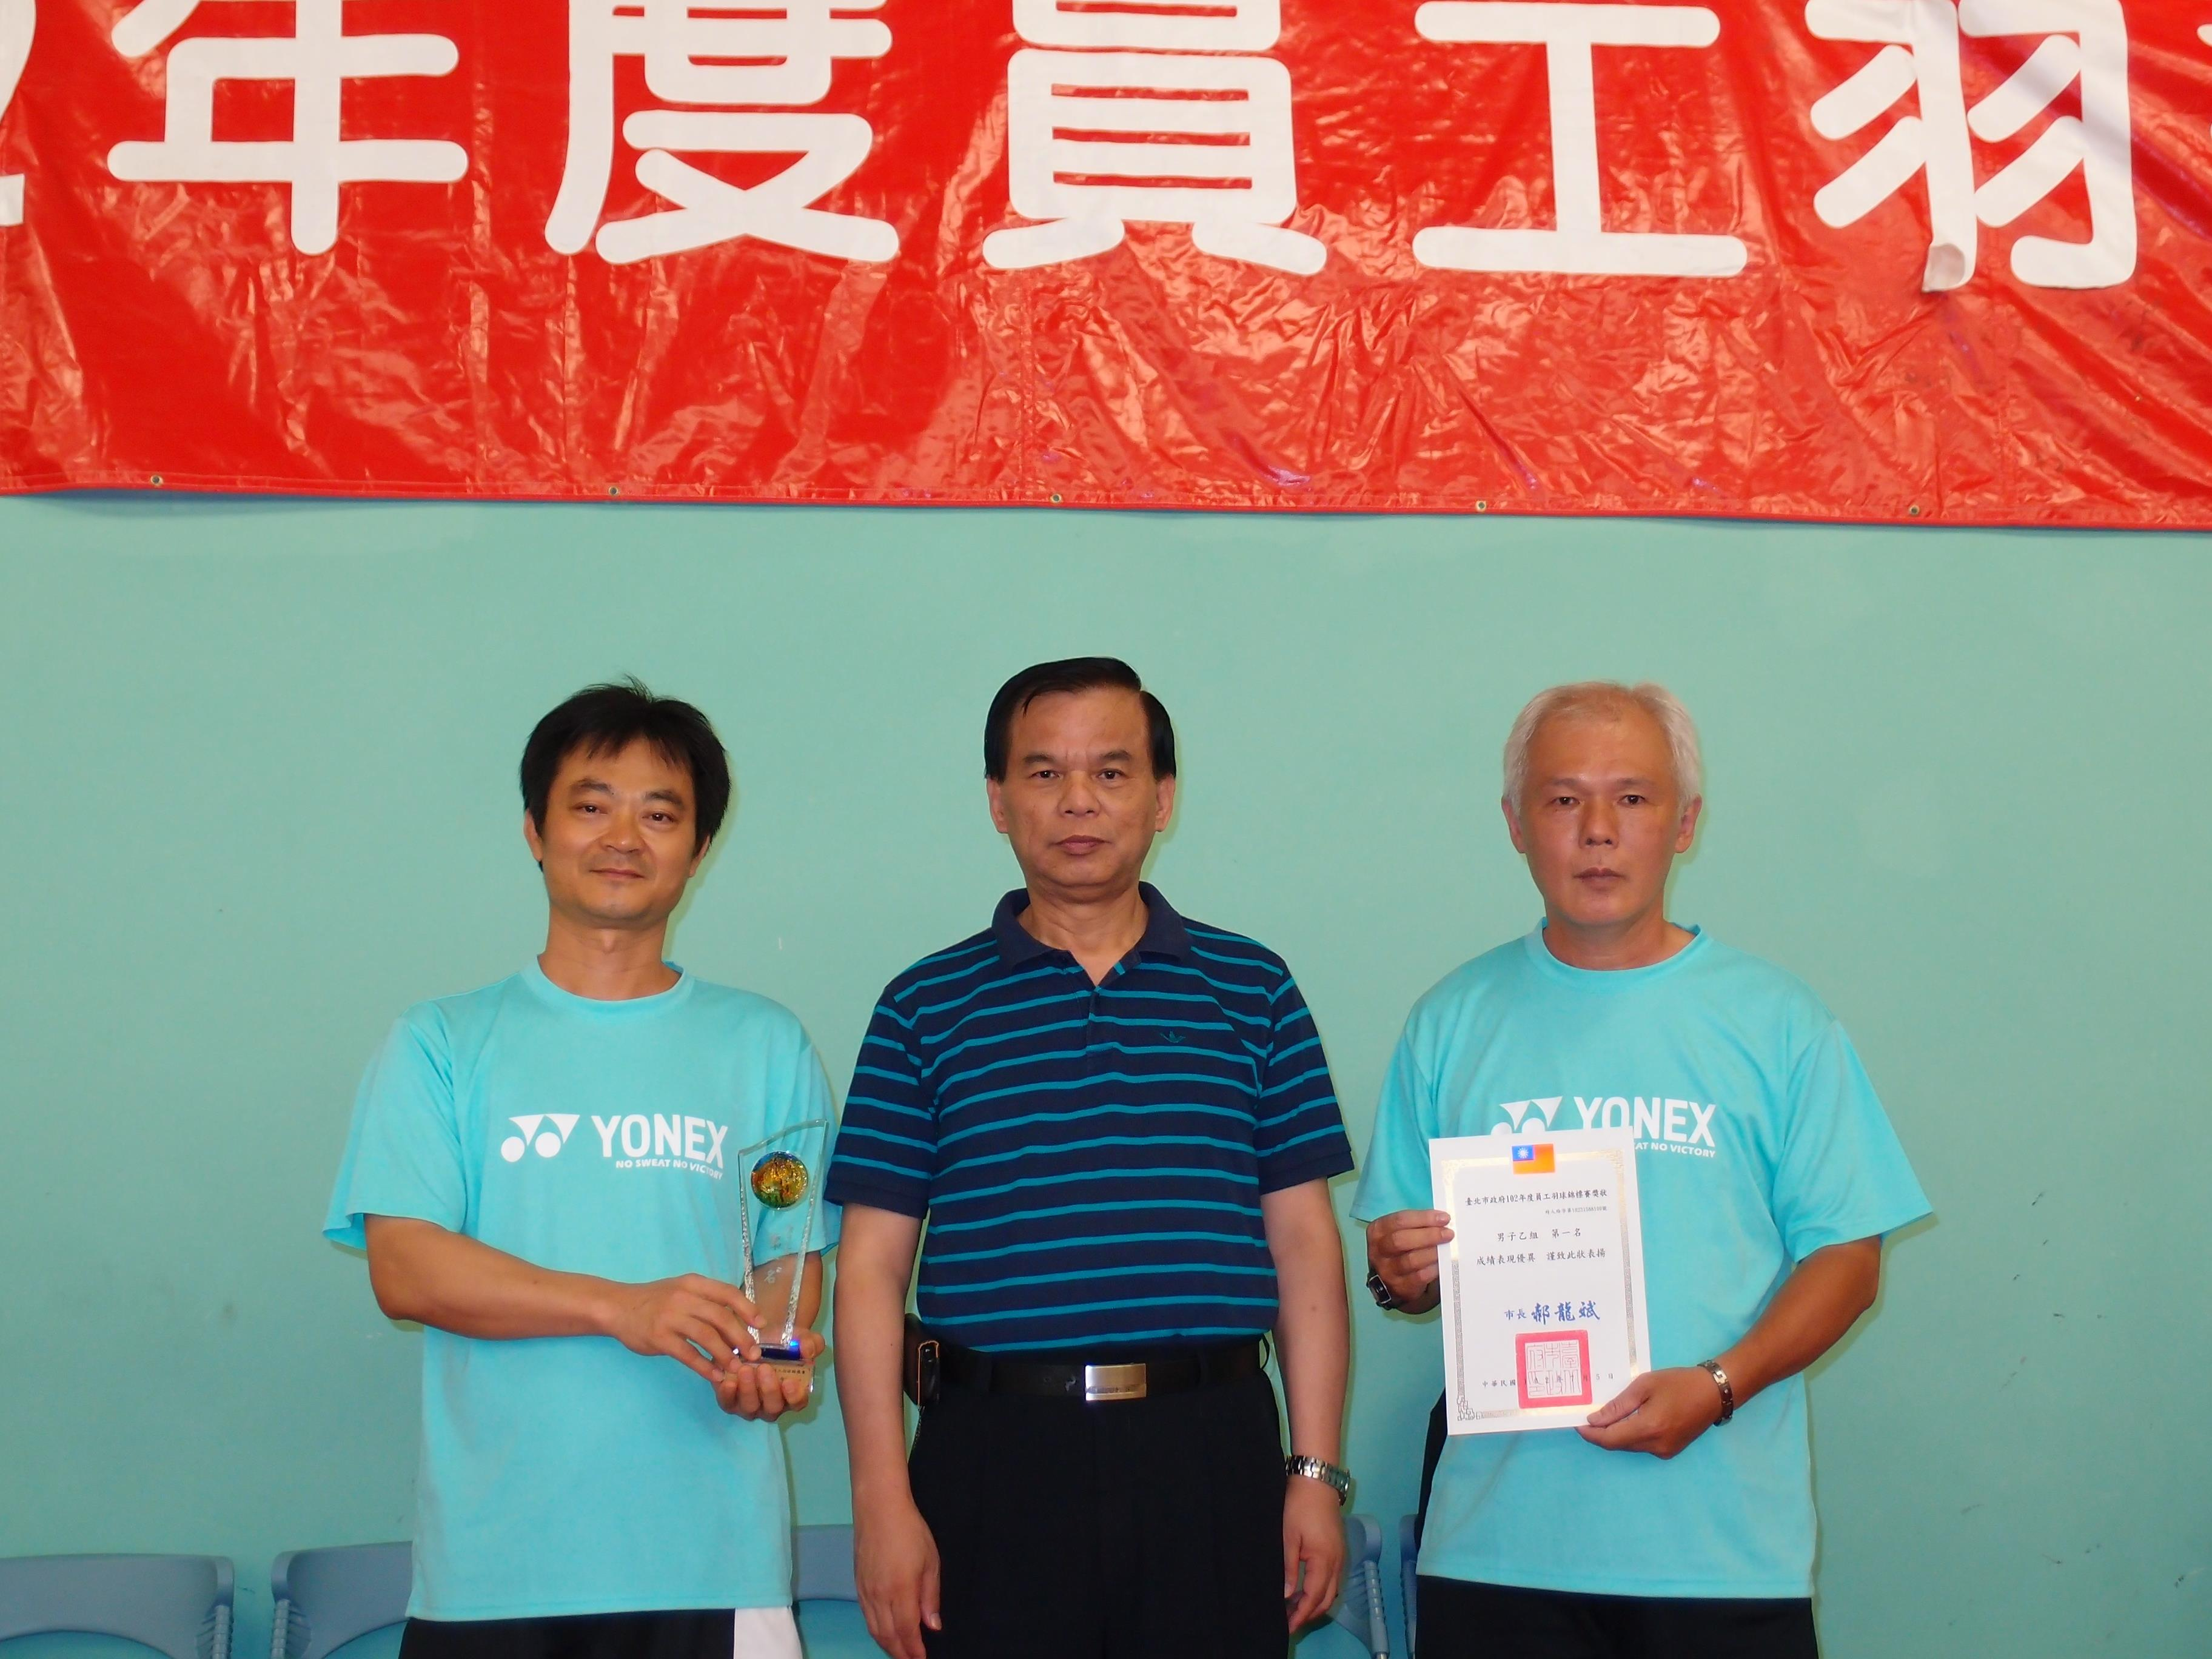 The Department won first prize in Male Group B. The prize was awarded by Chief Secretary Chen of the Department of Personnel on behalf of the Mayor.